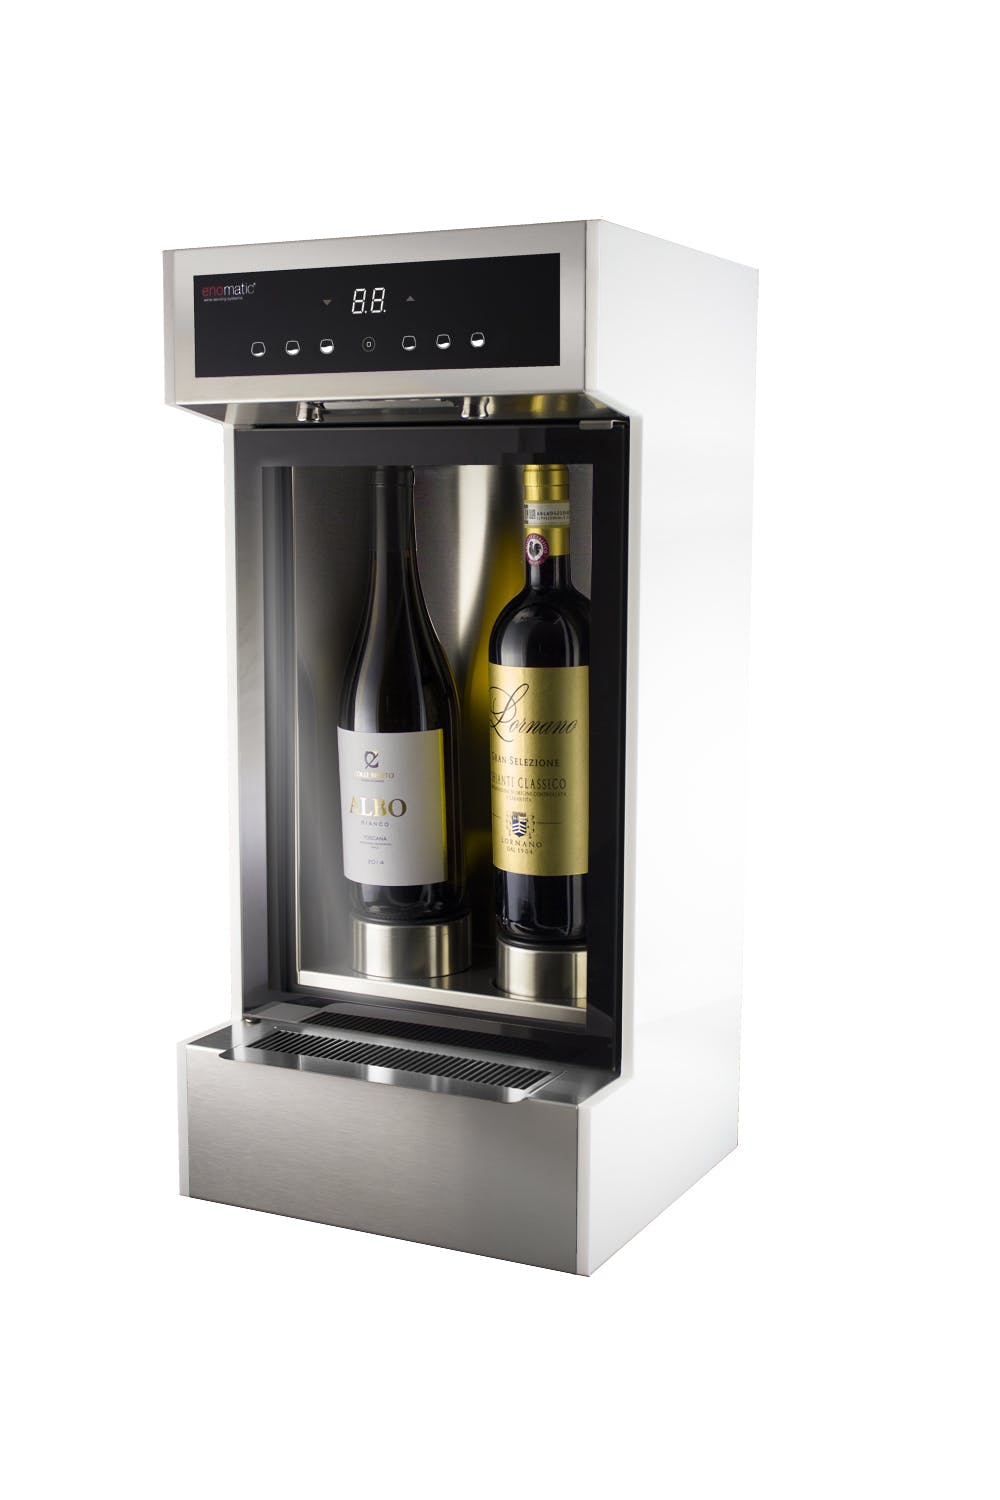 ENO ONE® 2bottle module system Beverage dispenser sold by Enomatic Wine Serving Systems